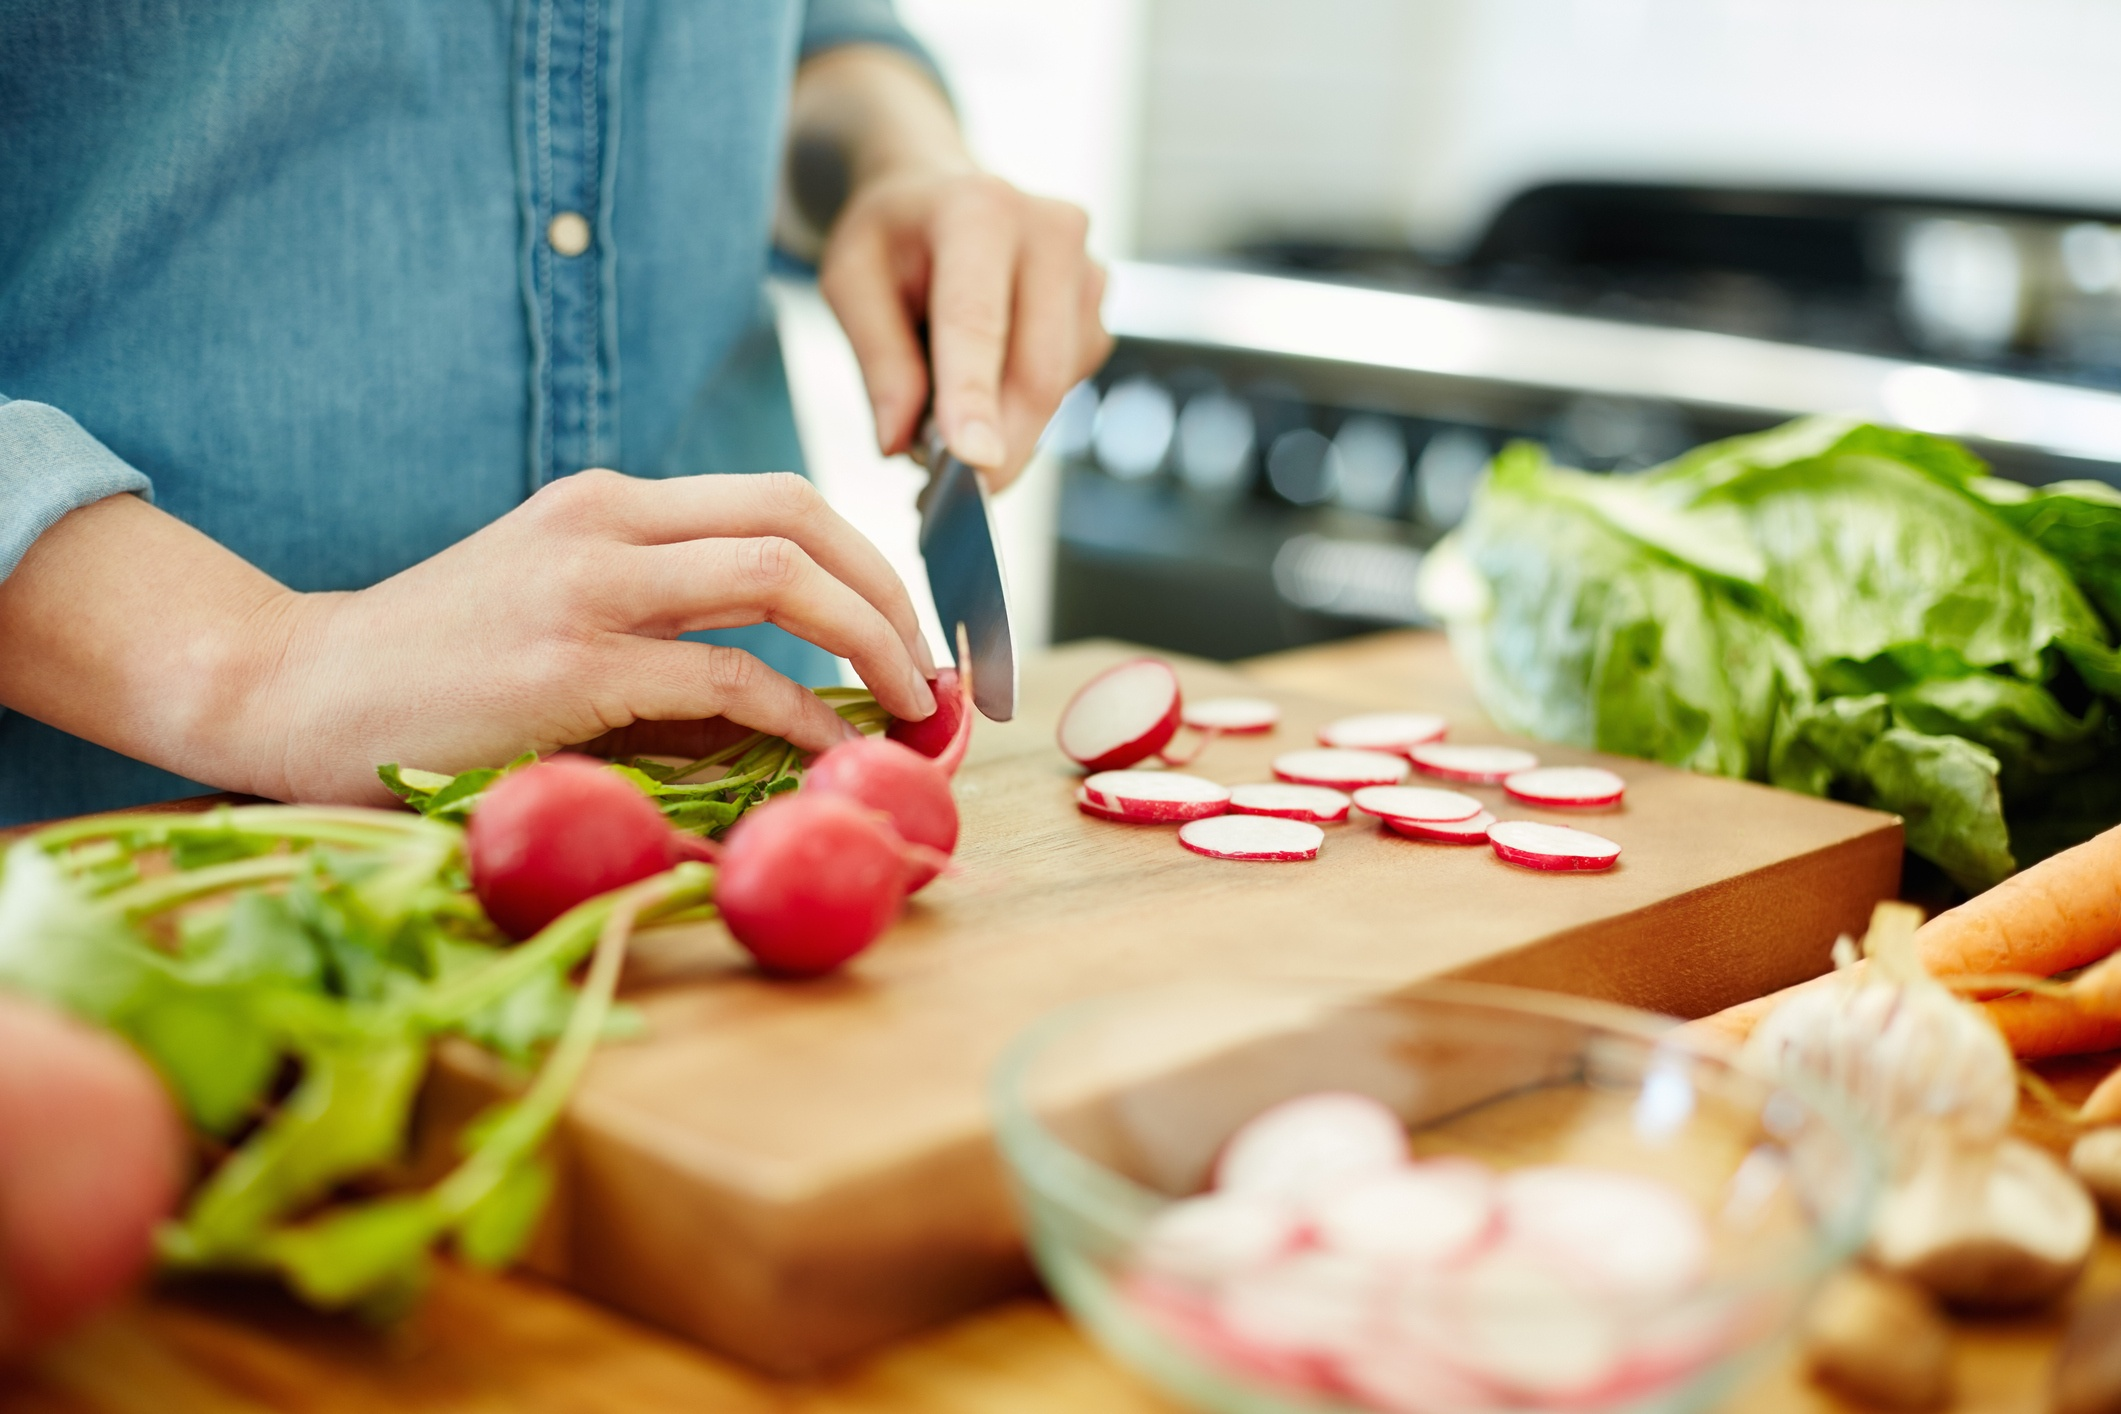 Woman chopping red radishes in the kitchen